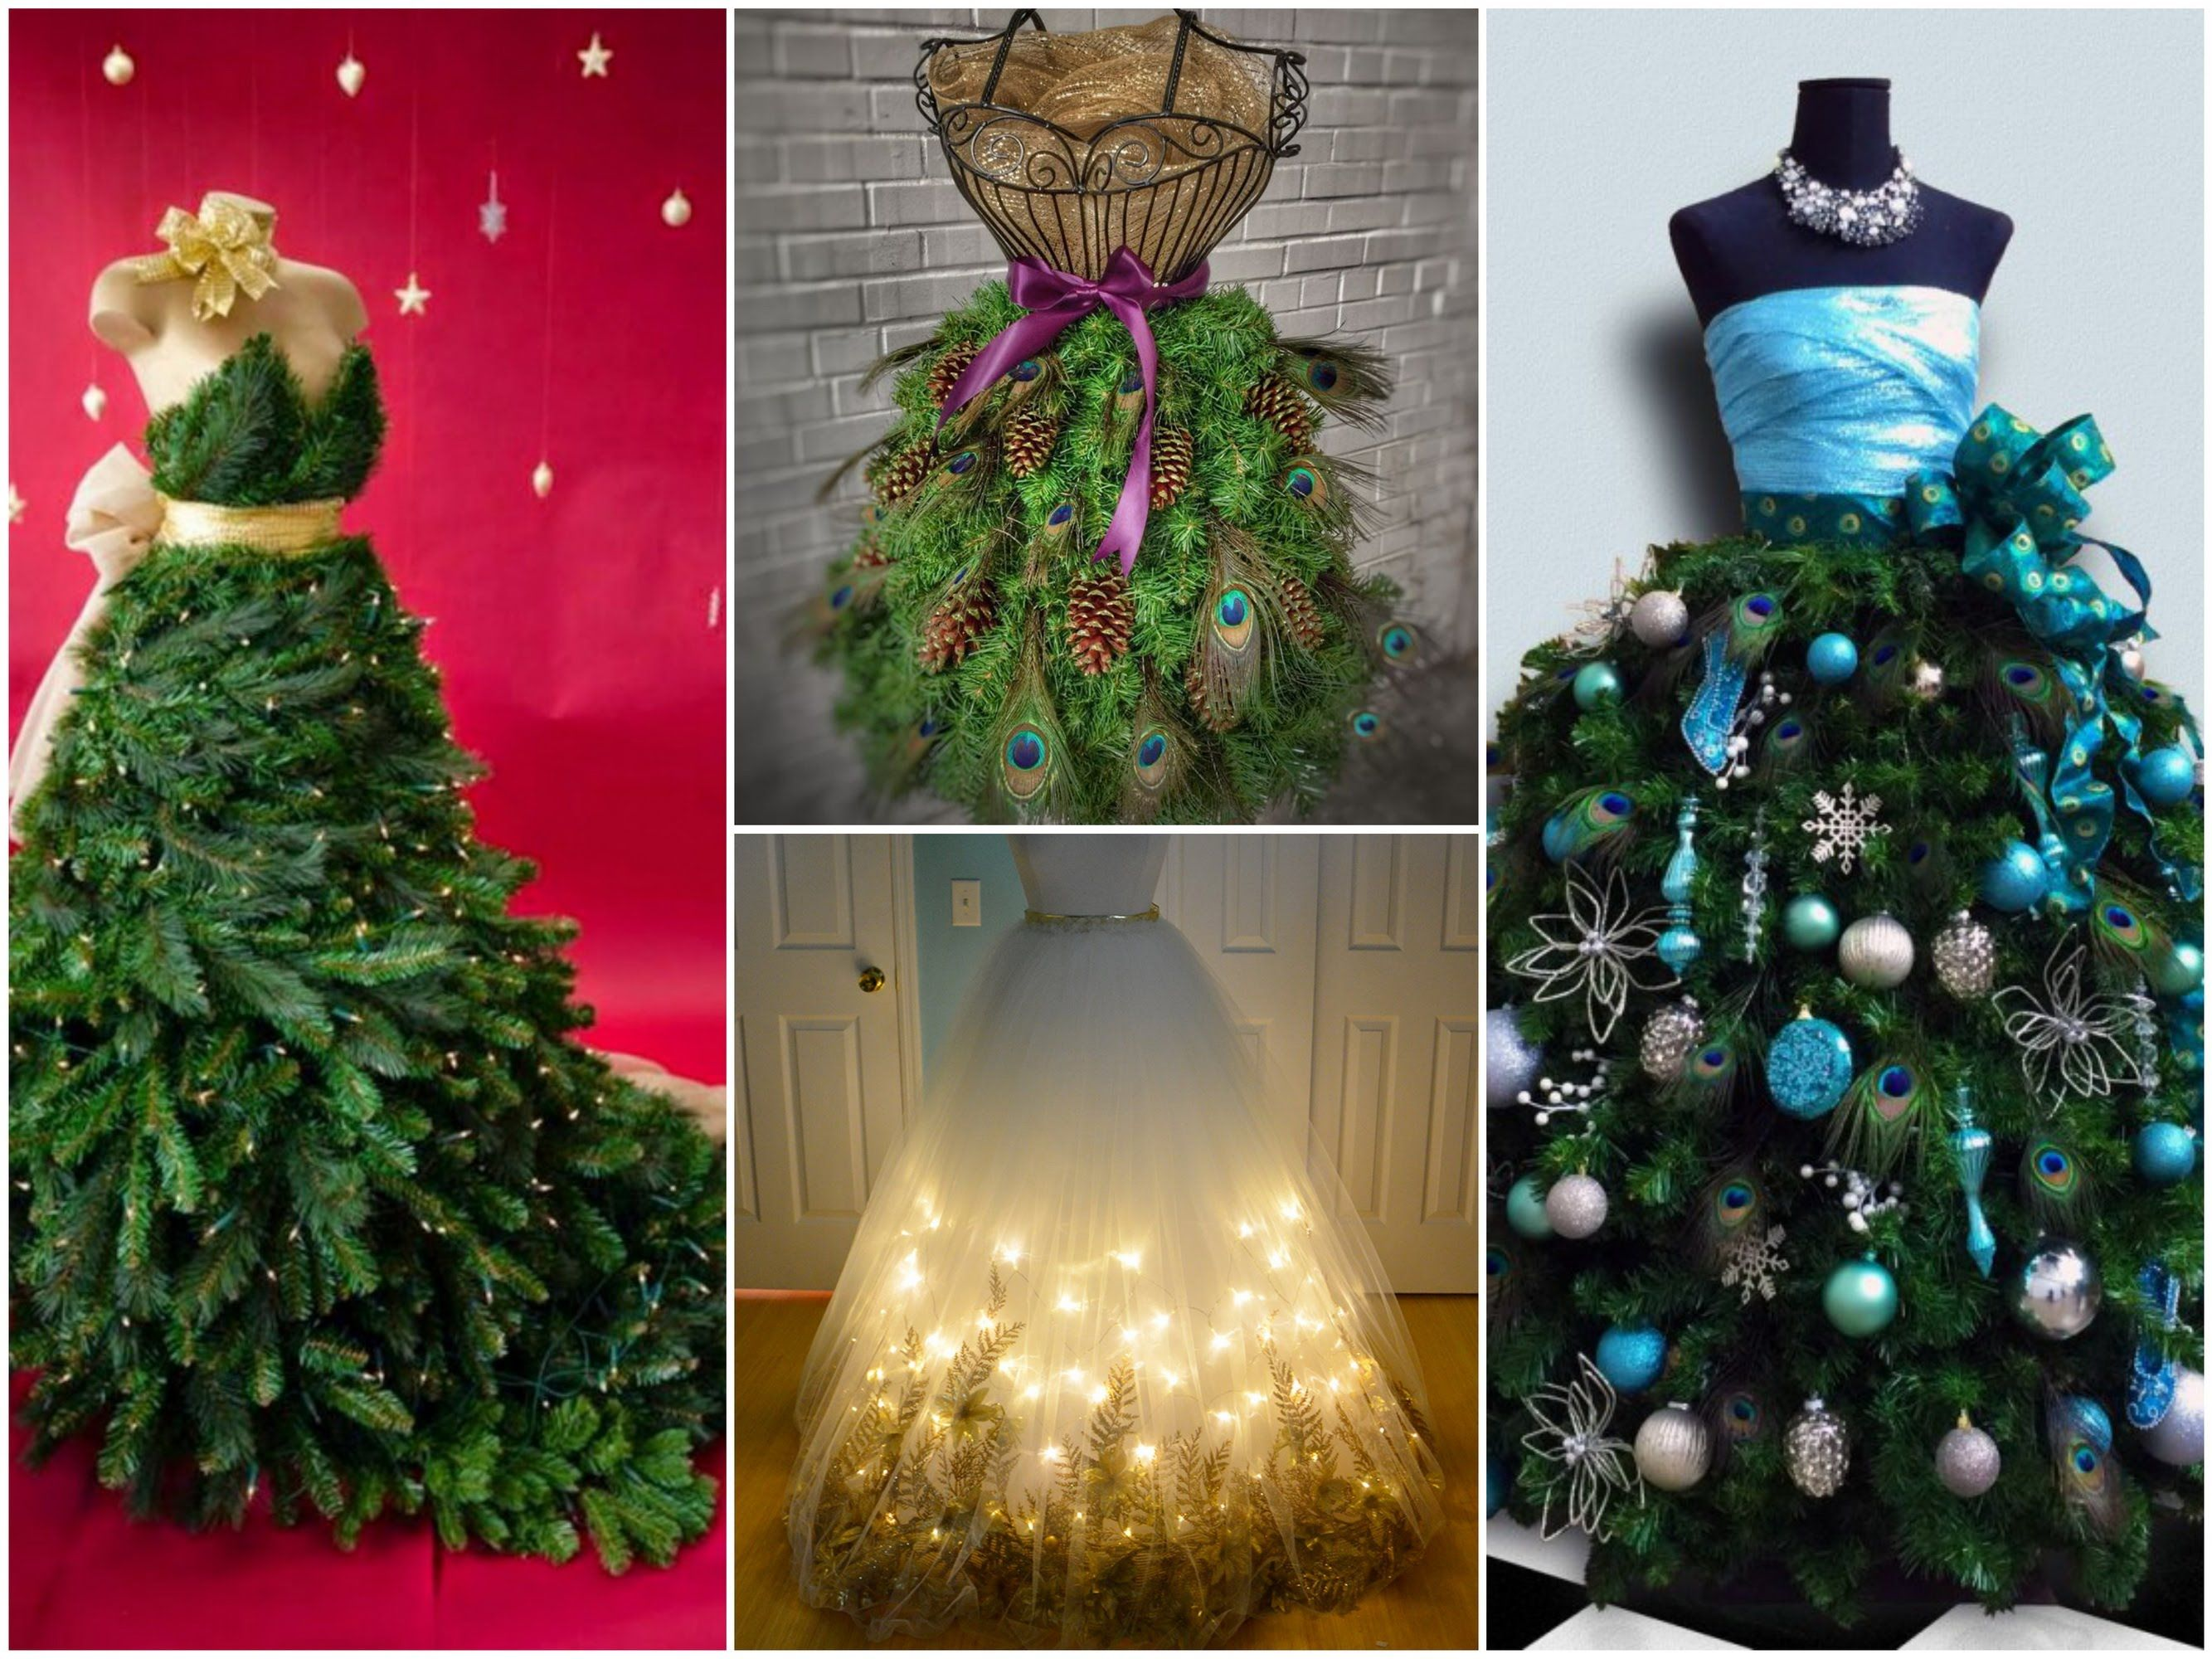 35 Best Dress Form Christmas Trees Mannequin Christmas Tree Ideas Dress Form Christmas Tree Christmas Party Decorations Diy Peacock Christmas Tree